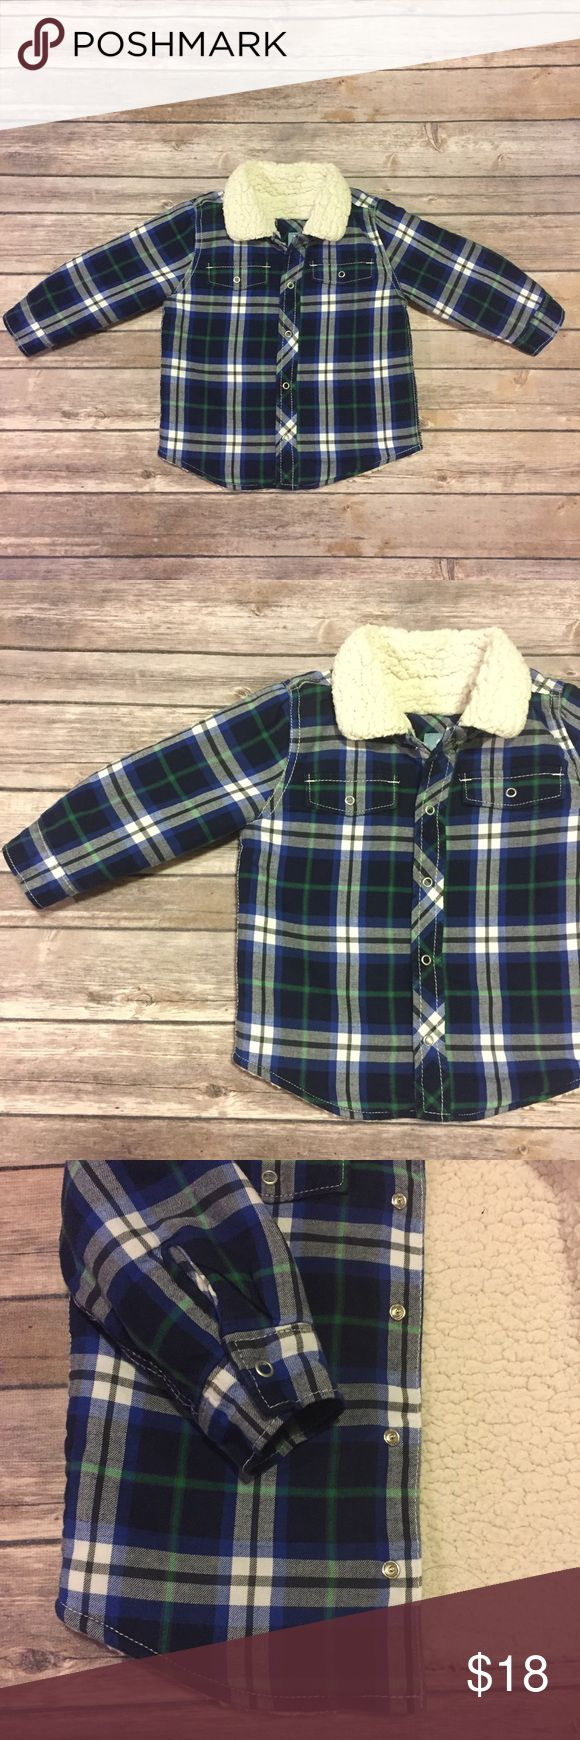 Baby Gap Sherpa Lined Plaid Shirt, 18-24 months Baby Gap (outlet) Sherpa Lined Plaid Shirt, flannel over sherpa makes this a cozy option. Could double as a jacket in the right climate. Worn just a few times. EUC GAP Shirts & Tops Button Down Shirts